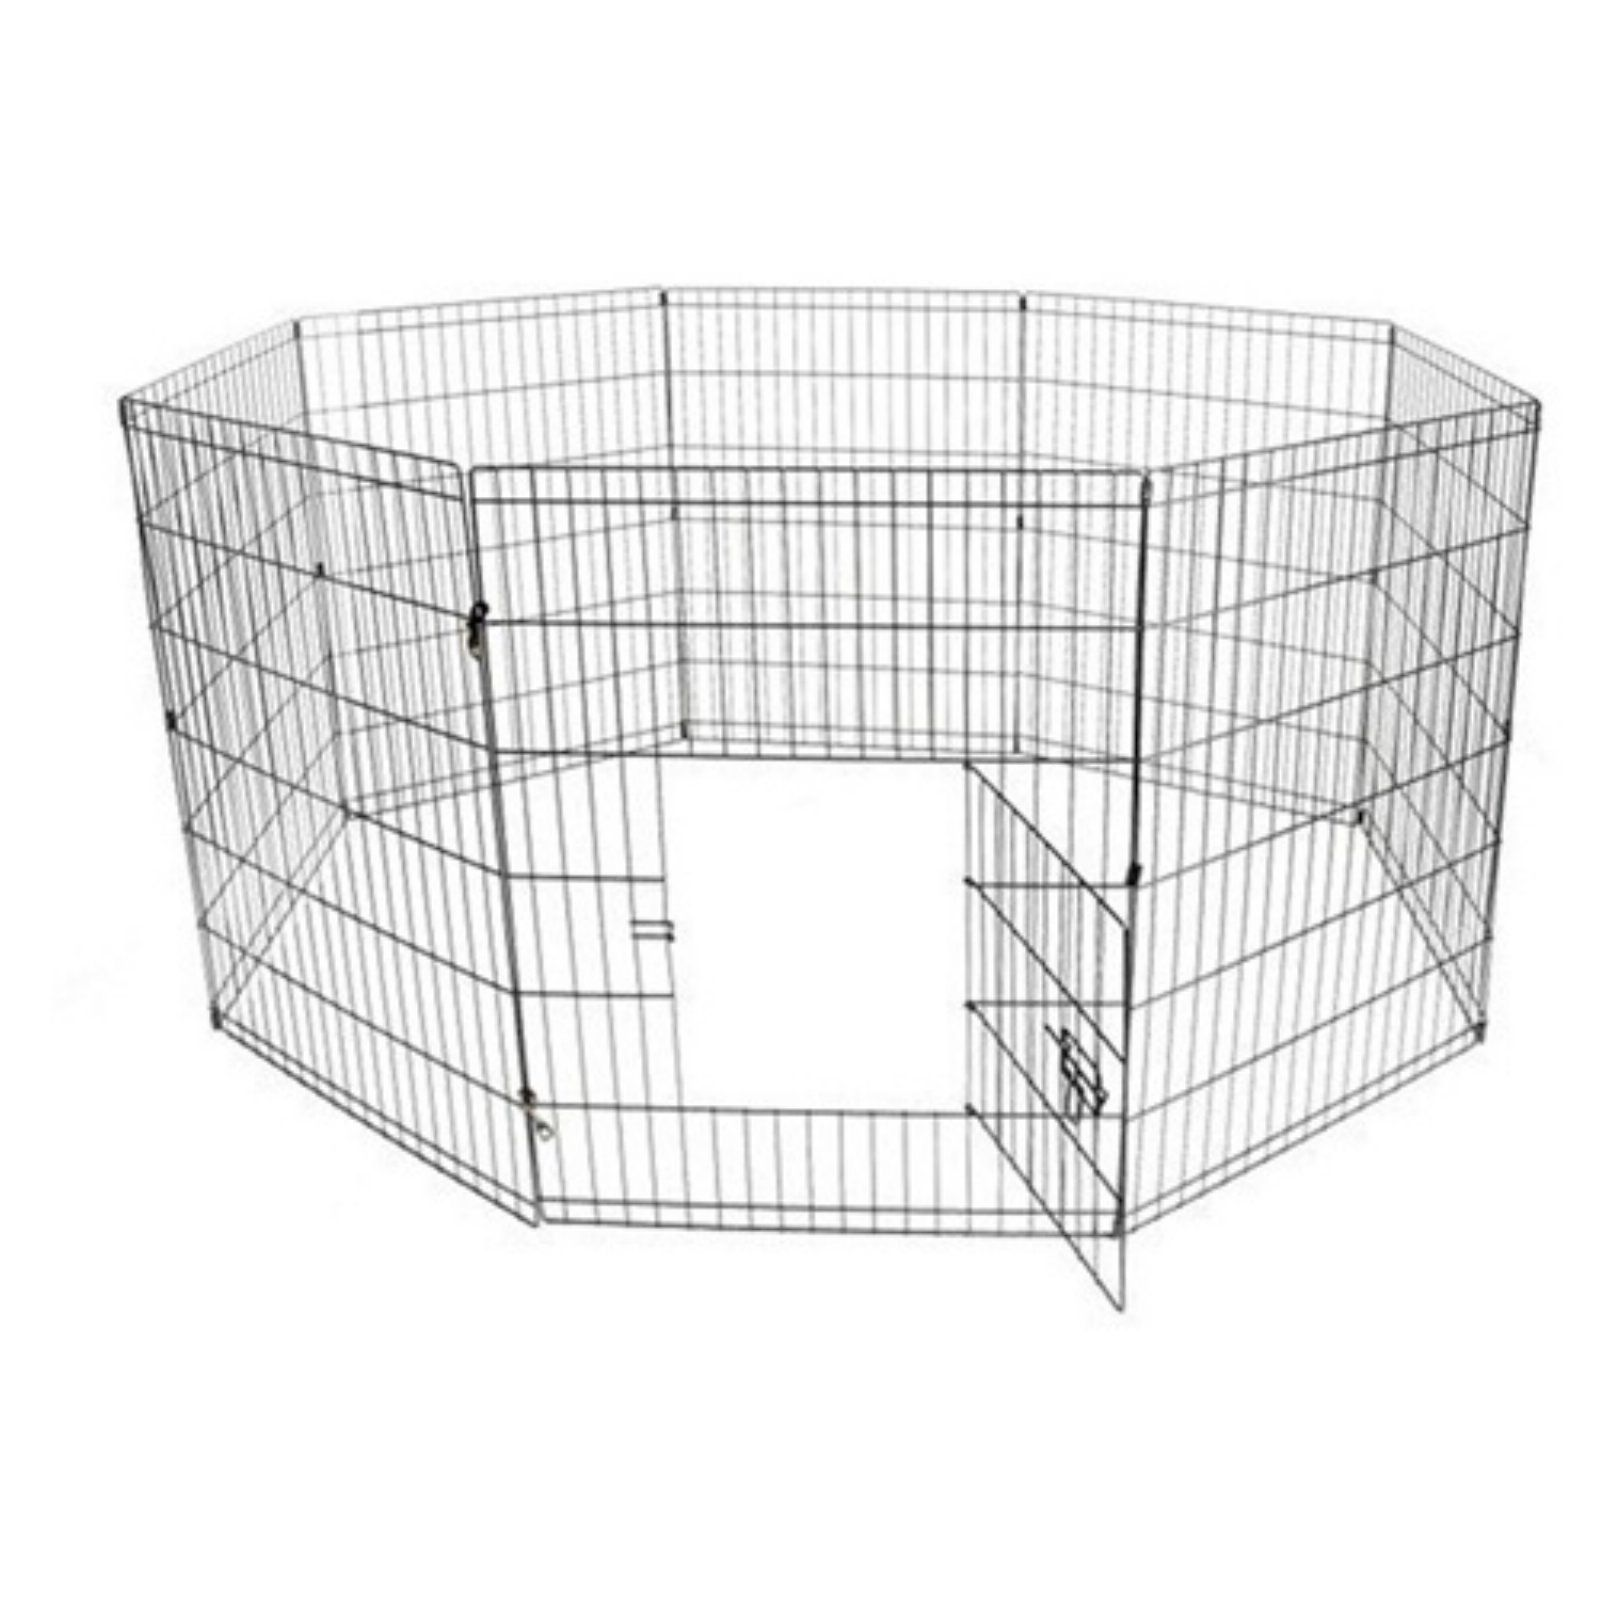 Cat Cage Gumtree Aleko Products 8 Panel Wire Pet Playpen Fence Black